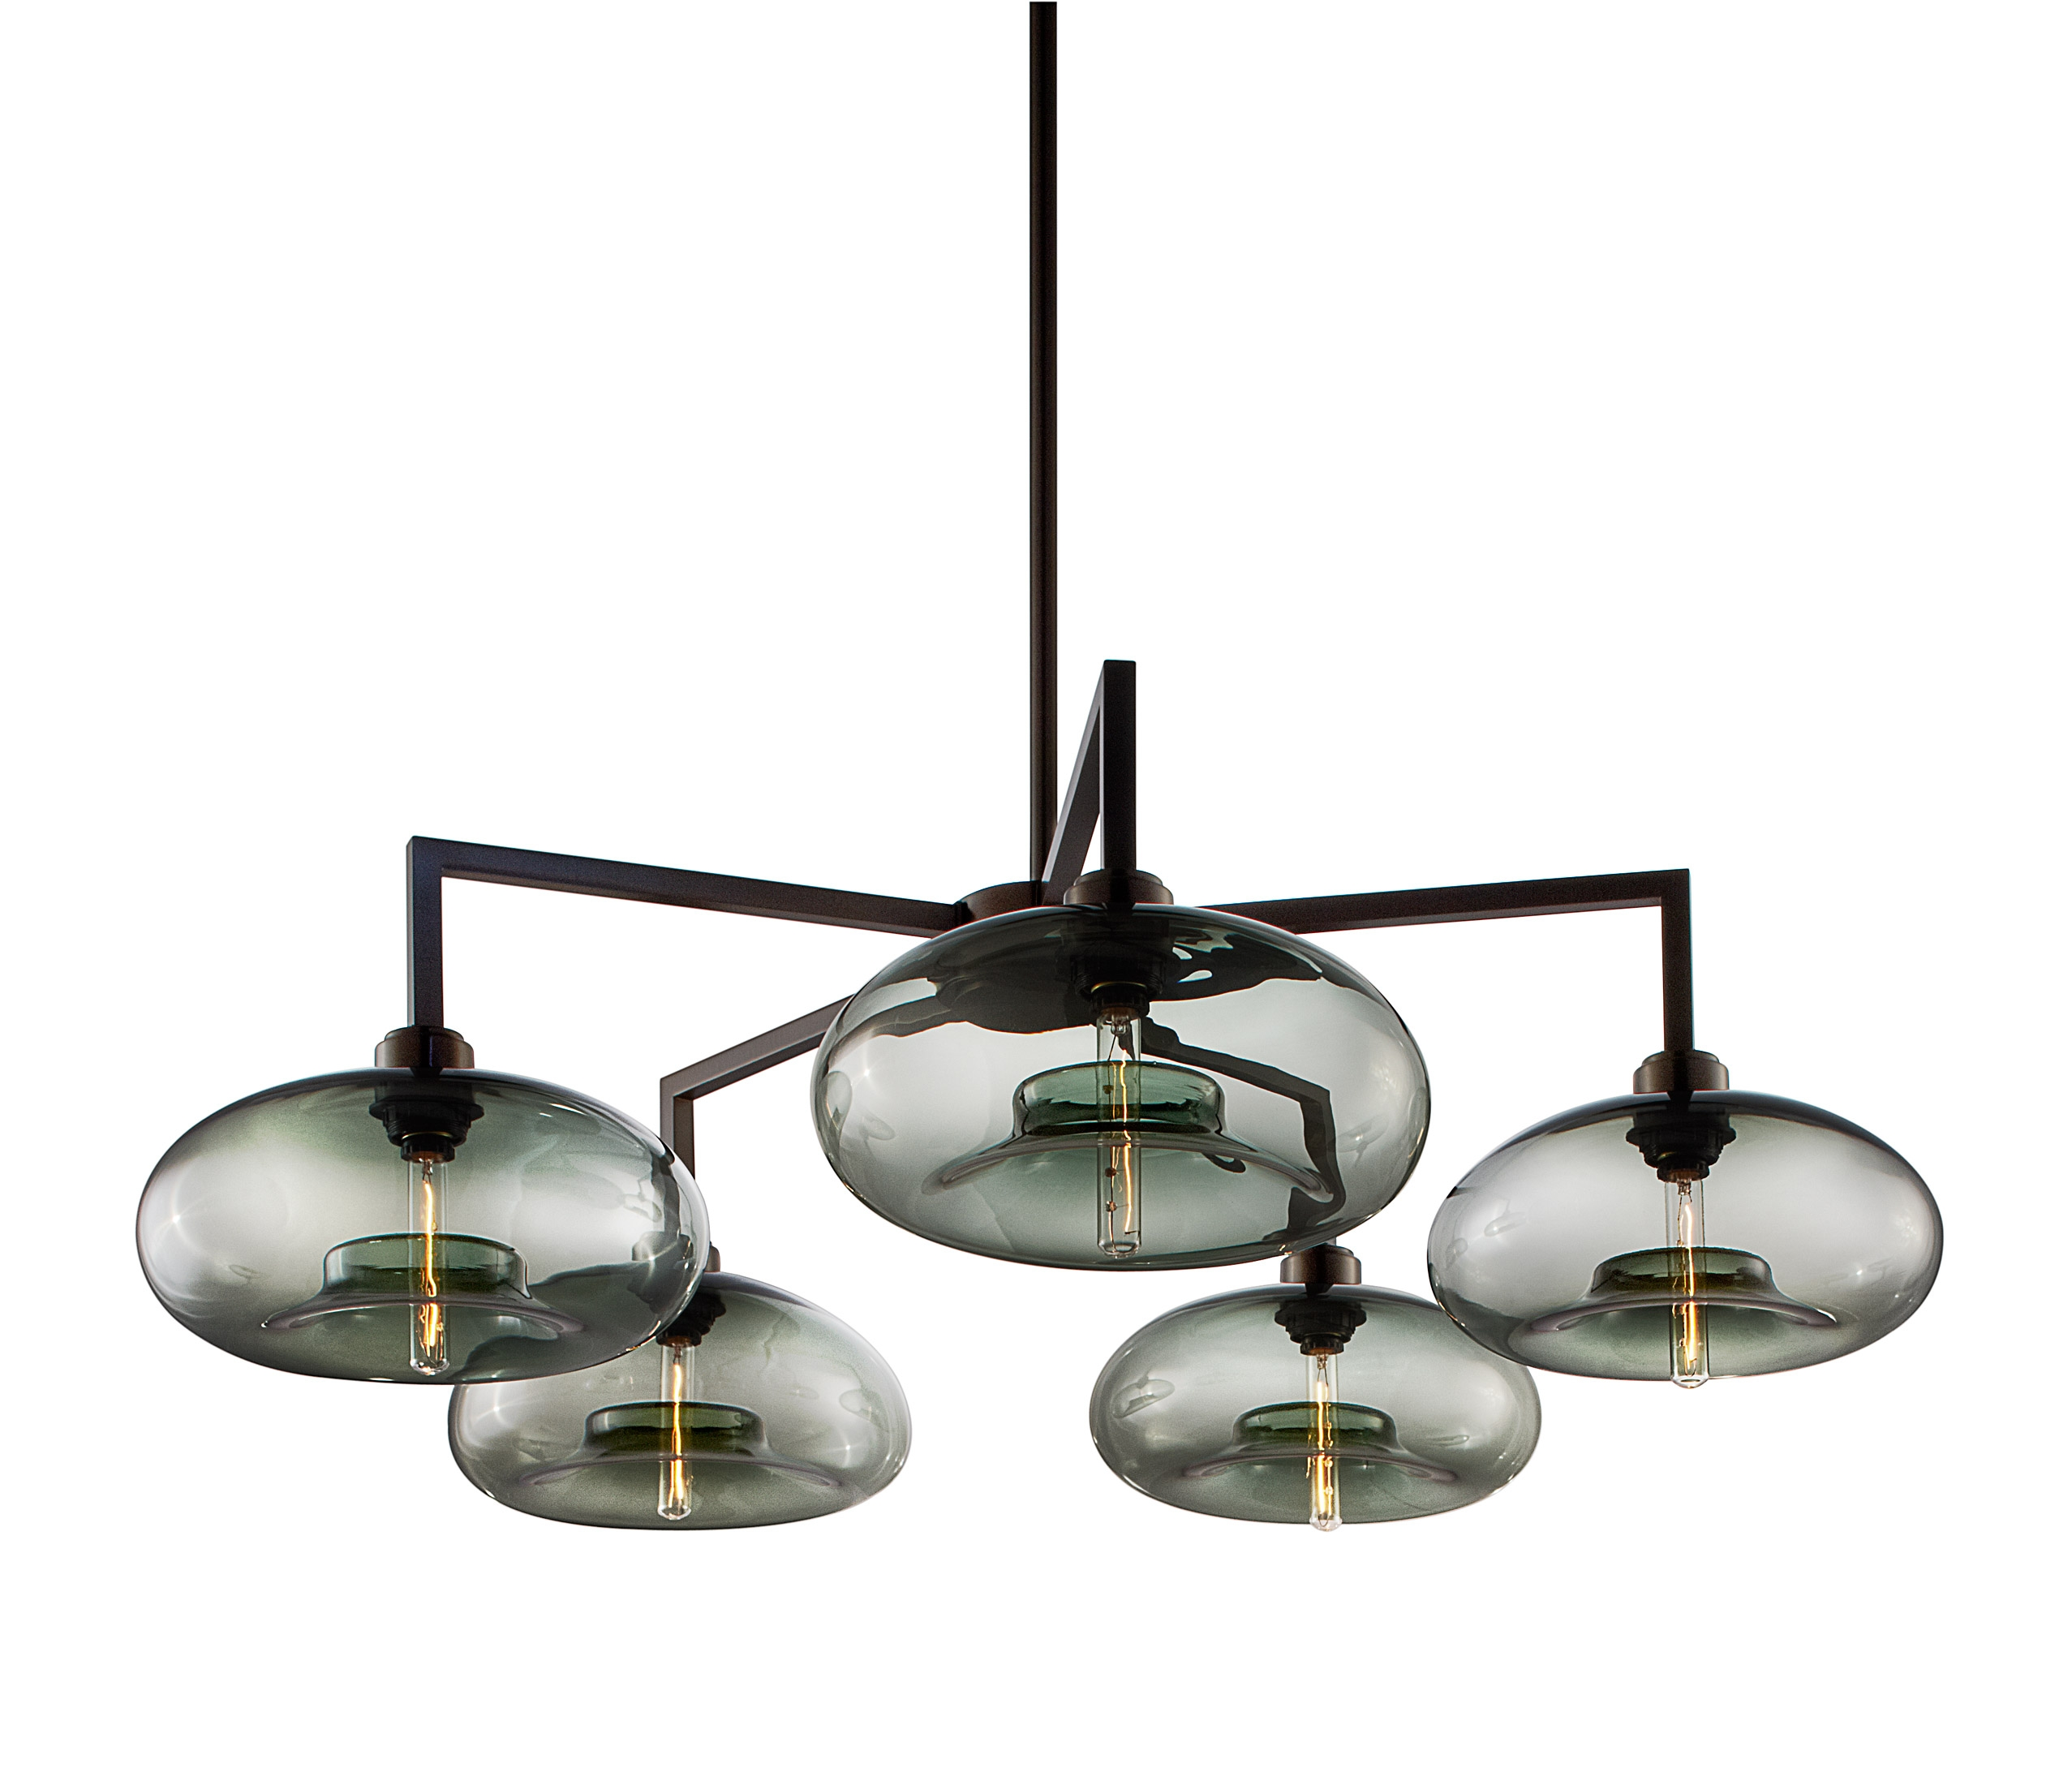 Quill 5 Modern Chandelier On Designer Pages Intended For Contemporary Chandelier (View 14 of 15)